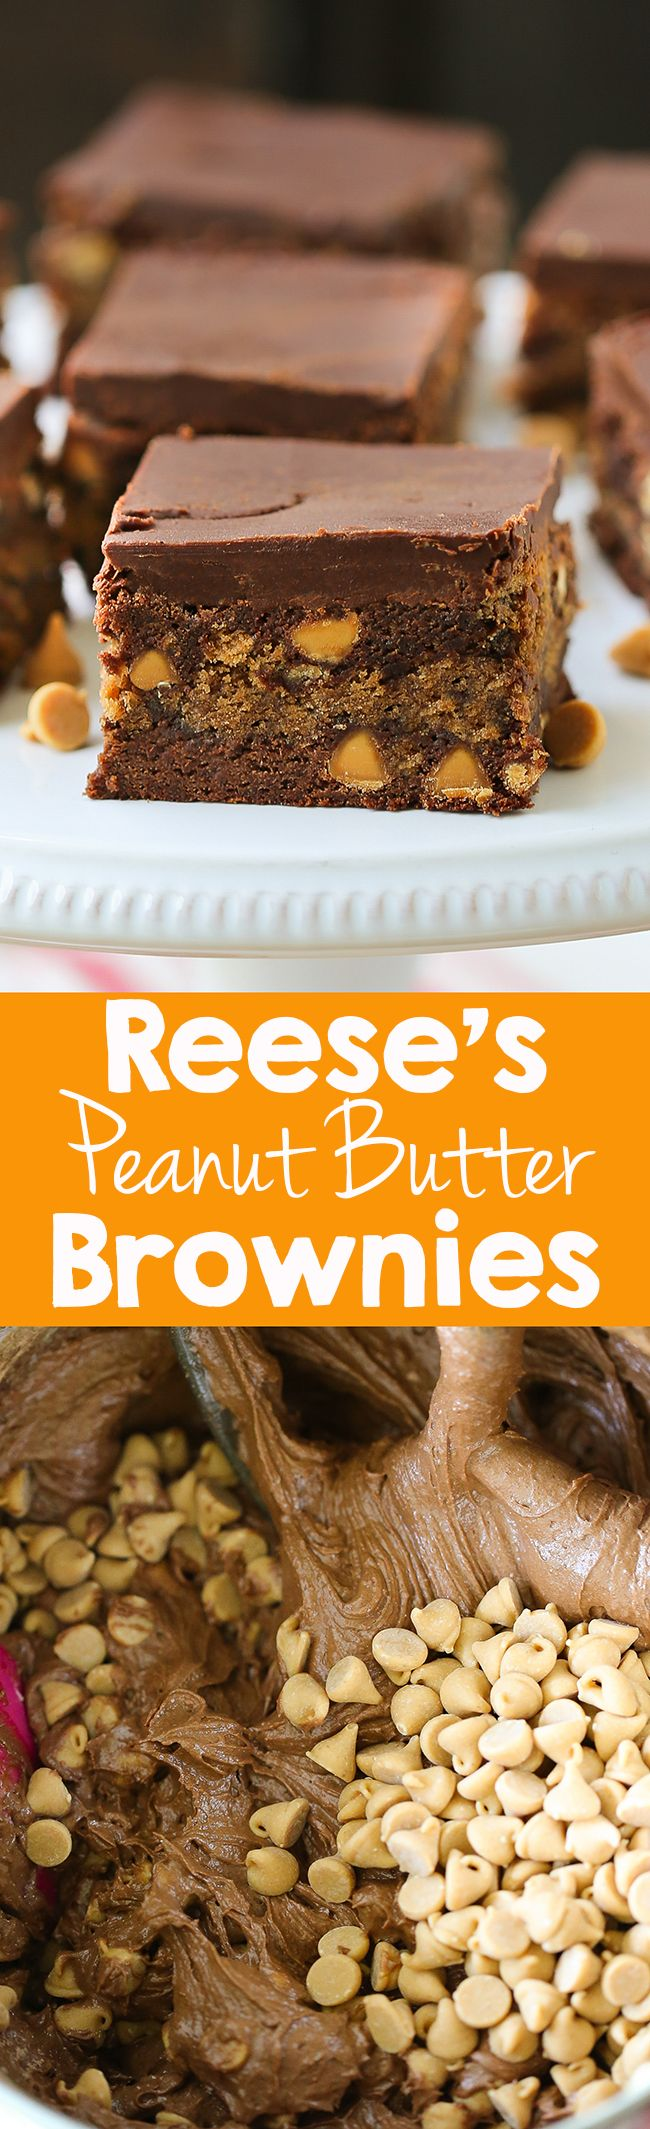 Fudgy, rich, peanut butter marbled throughout decadent chocolate brownies. #chocolate #dessert #recipe